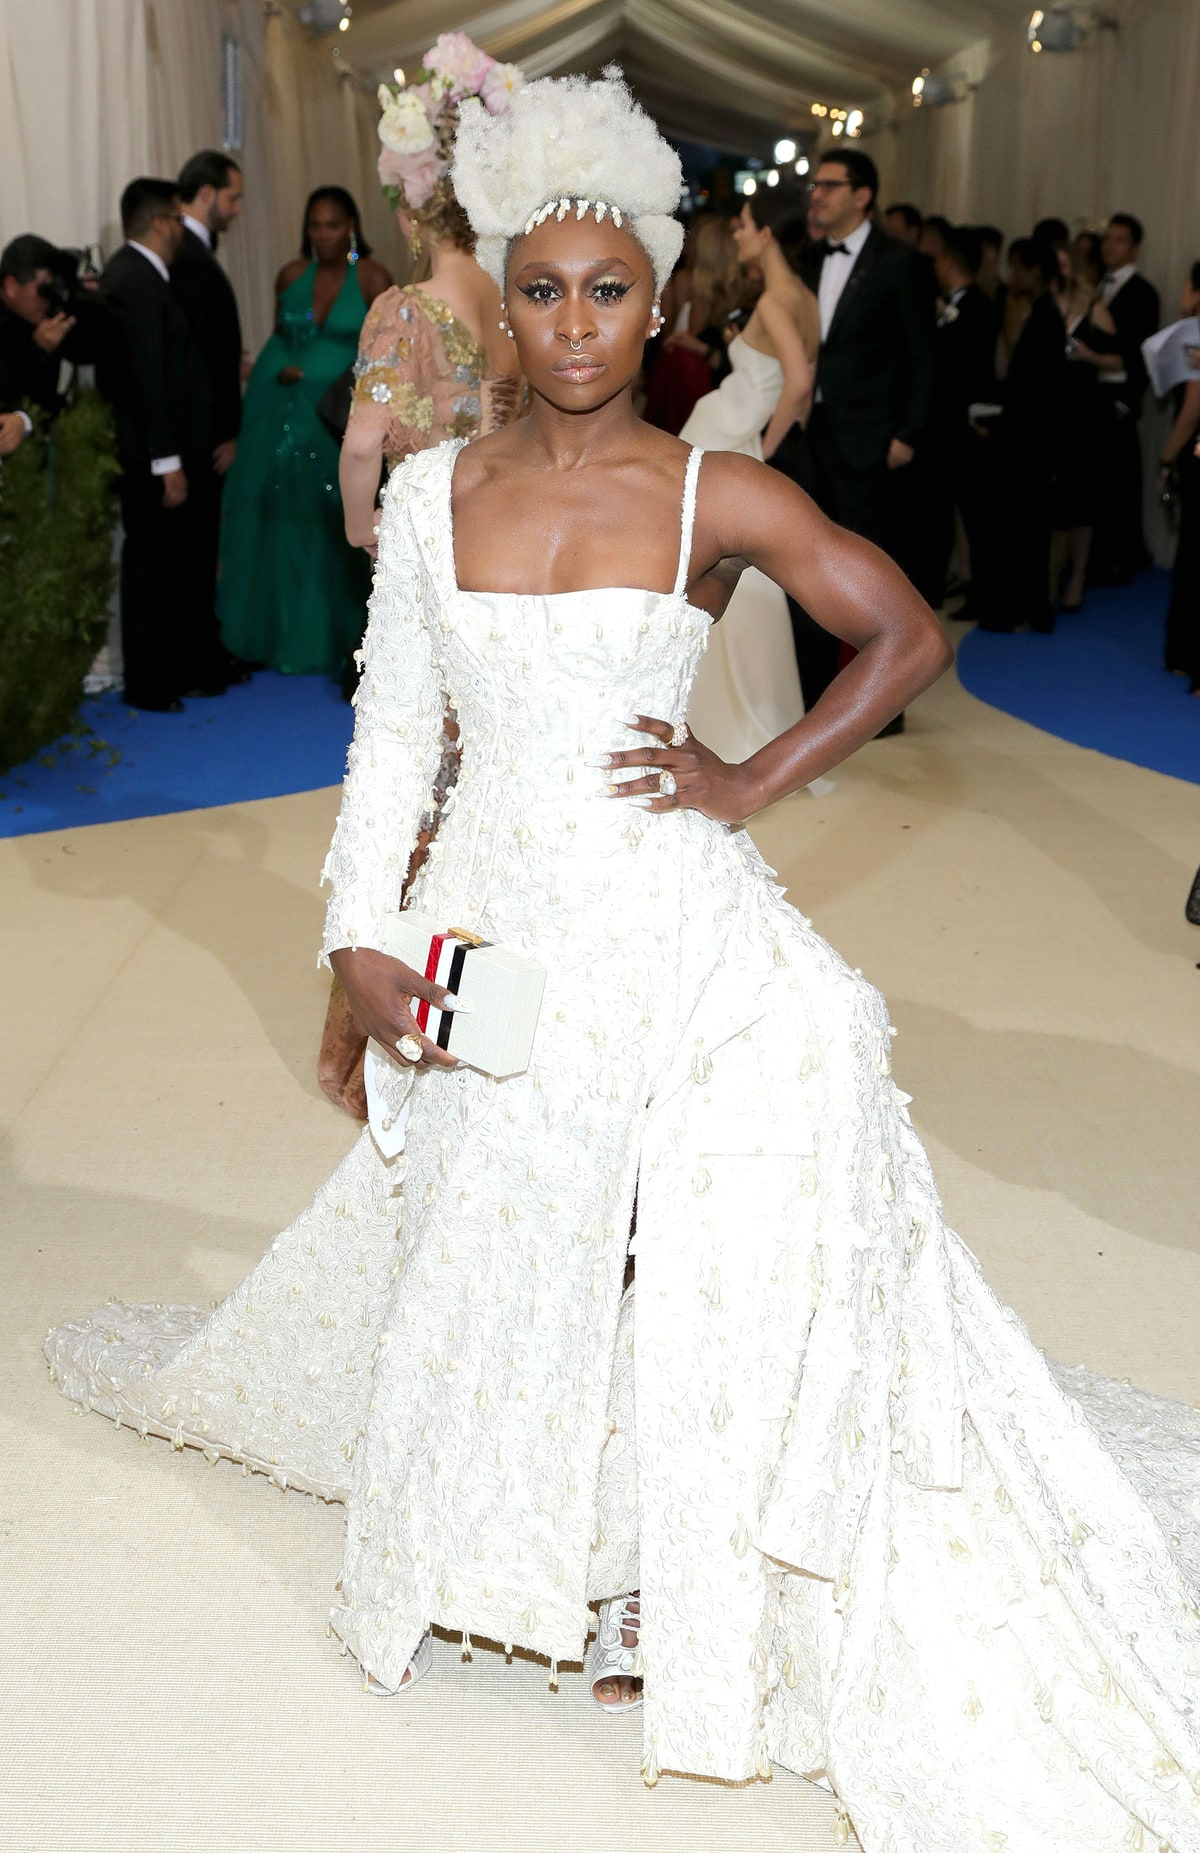 Cynthia Erivo in Thom Browne. All that comes to mind is The Hunger Games whistle and Elizabeth Mann's character Effie. Not sure what she was going for here. Perhaps Marie Antoinette?